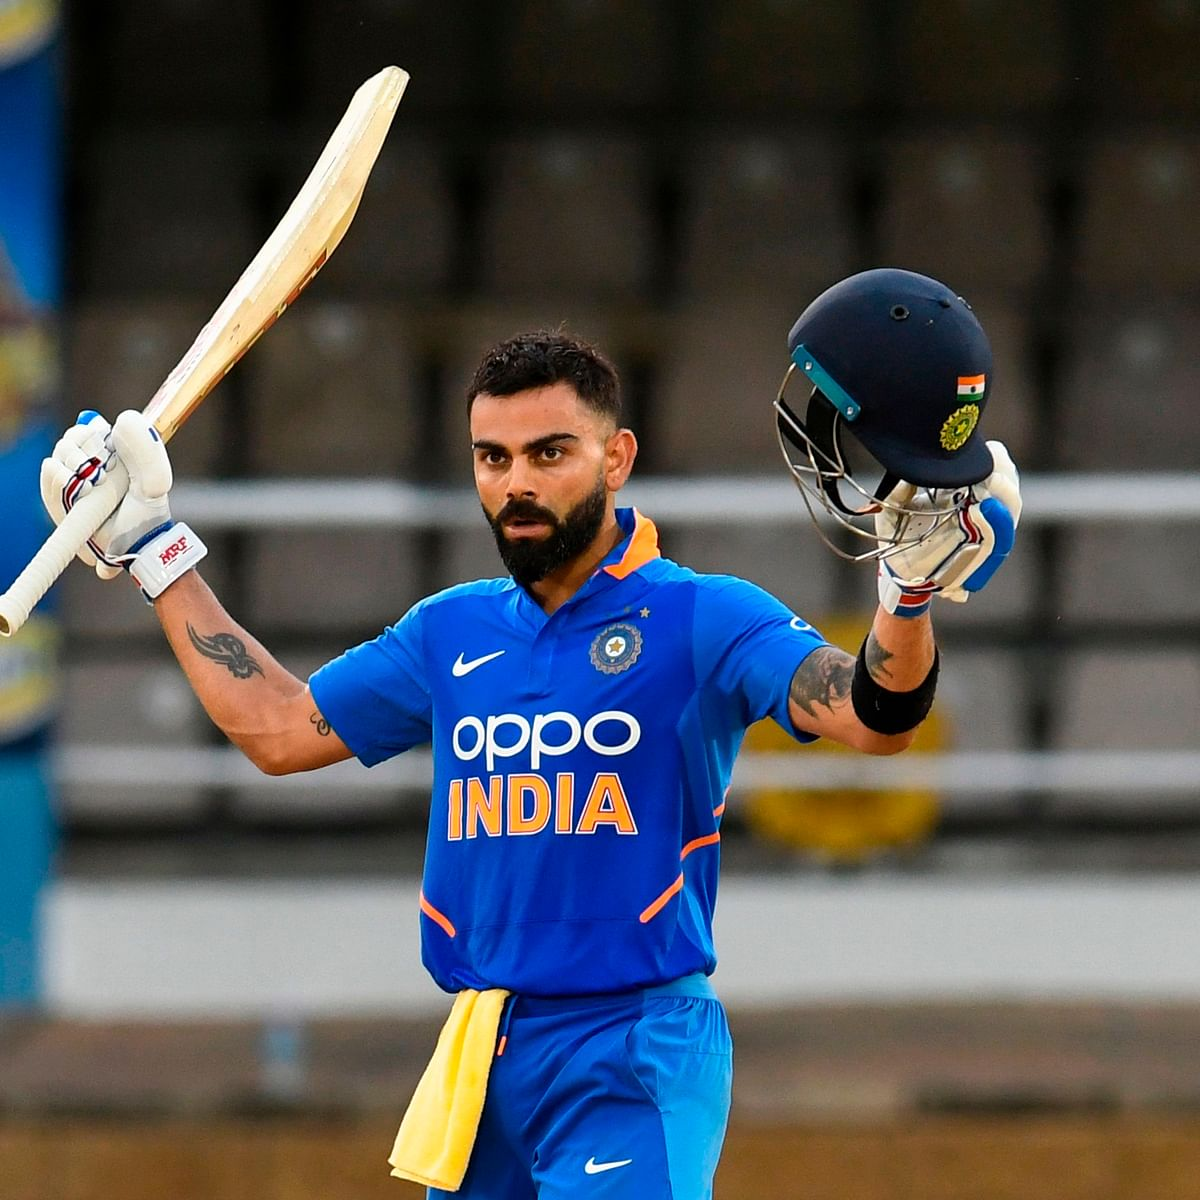 Virat Kohli becomes first batsman to score 20,000 international runs in a decade